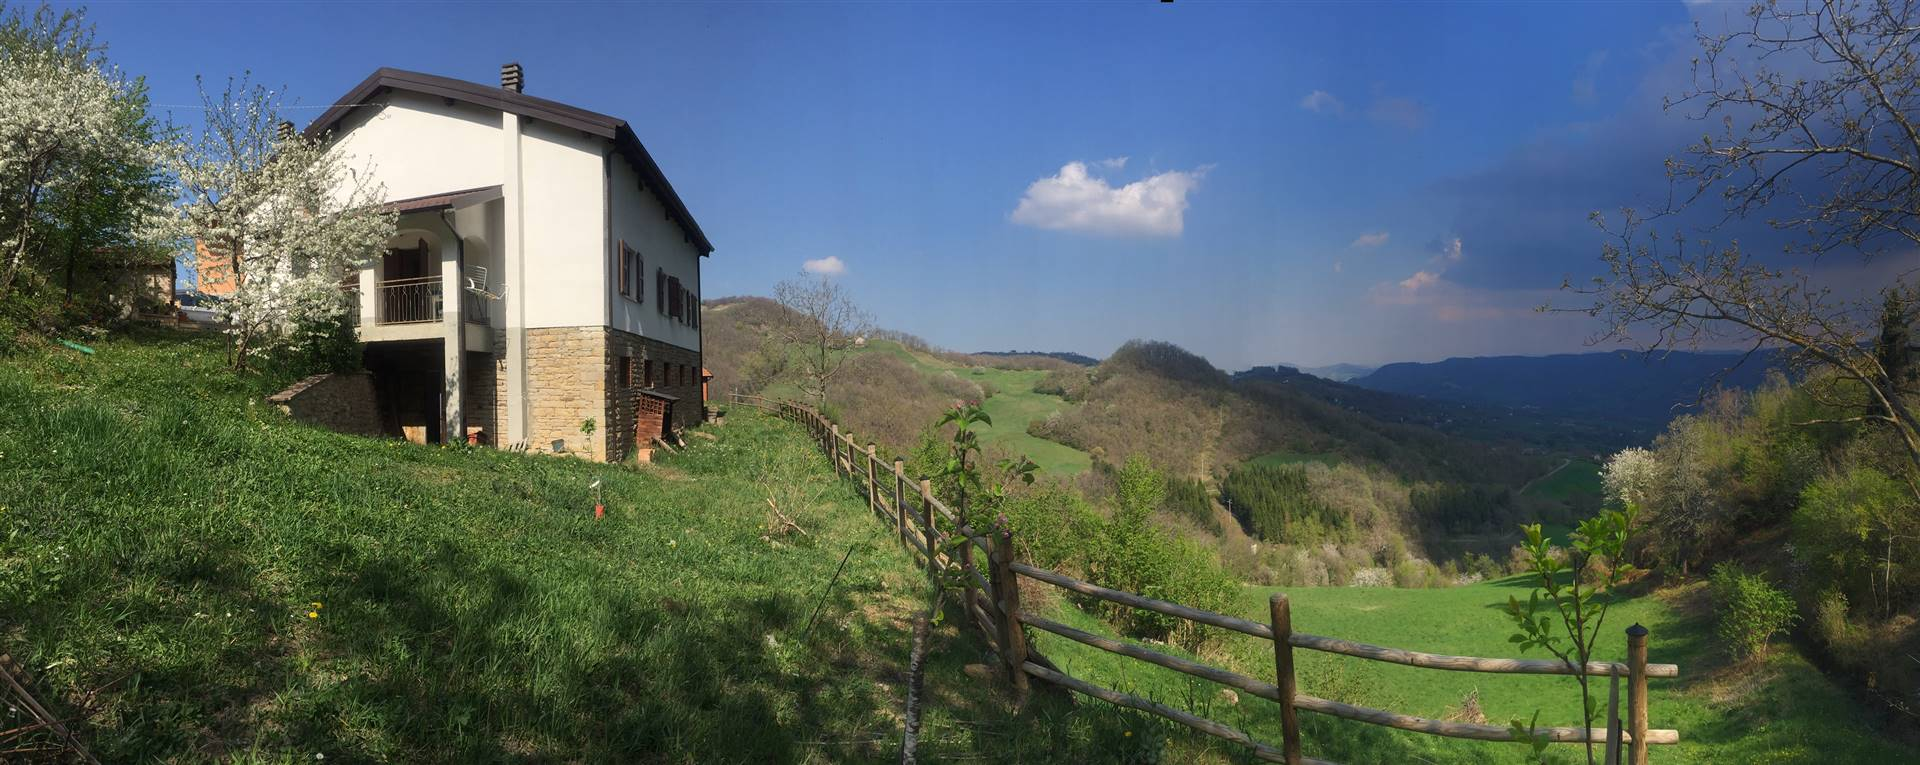 Farmhouse in LAMA MOCOGNO